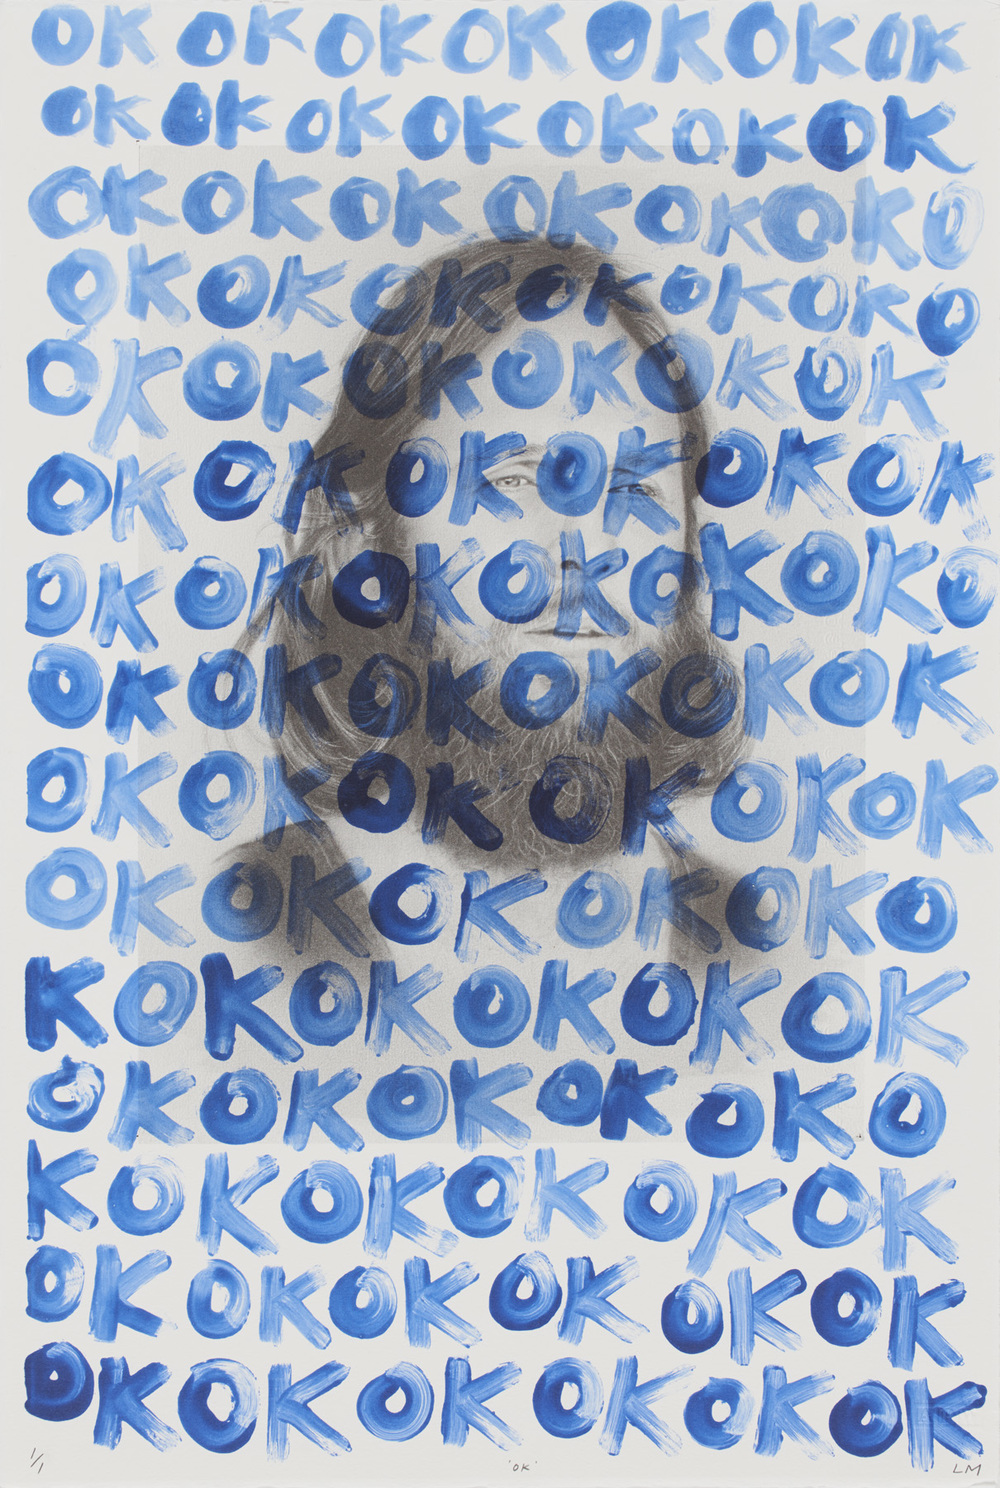 Laith McGregor,  OK , 2014, unique state lithograph, one photo-lithographic plate with monoprint by the artist, image size: 560 x 380 mm, paper size: 560 x 380 mm